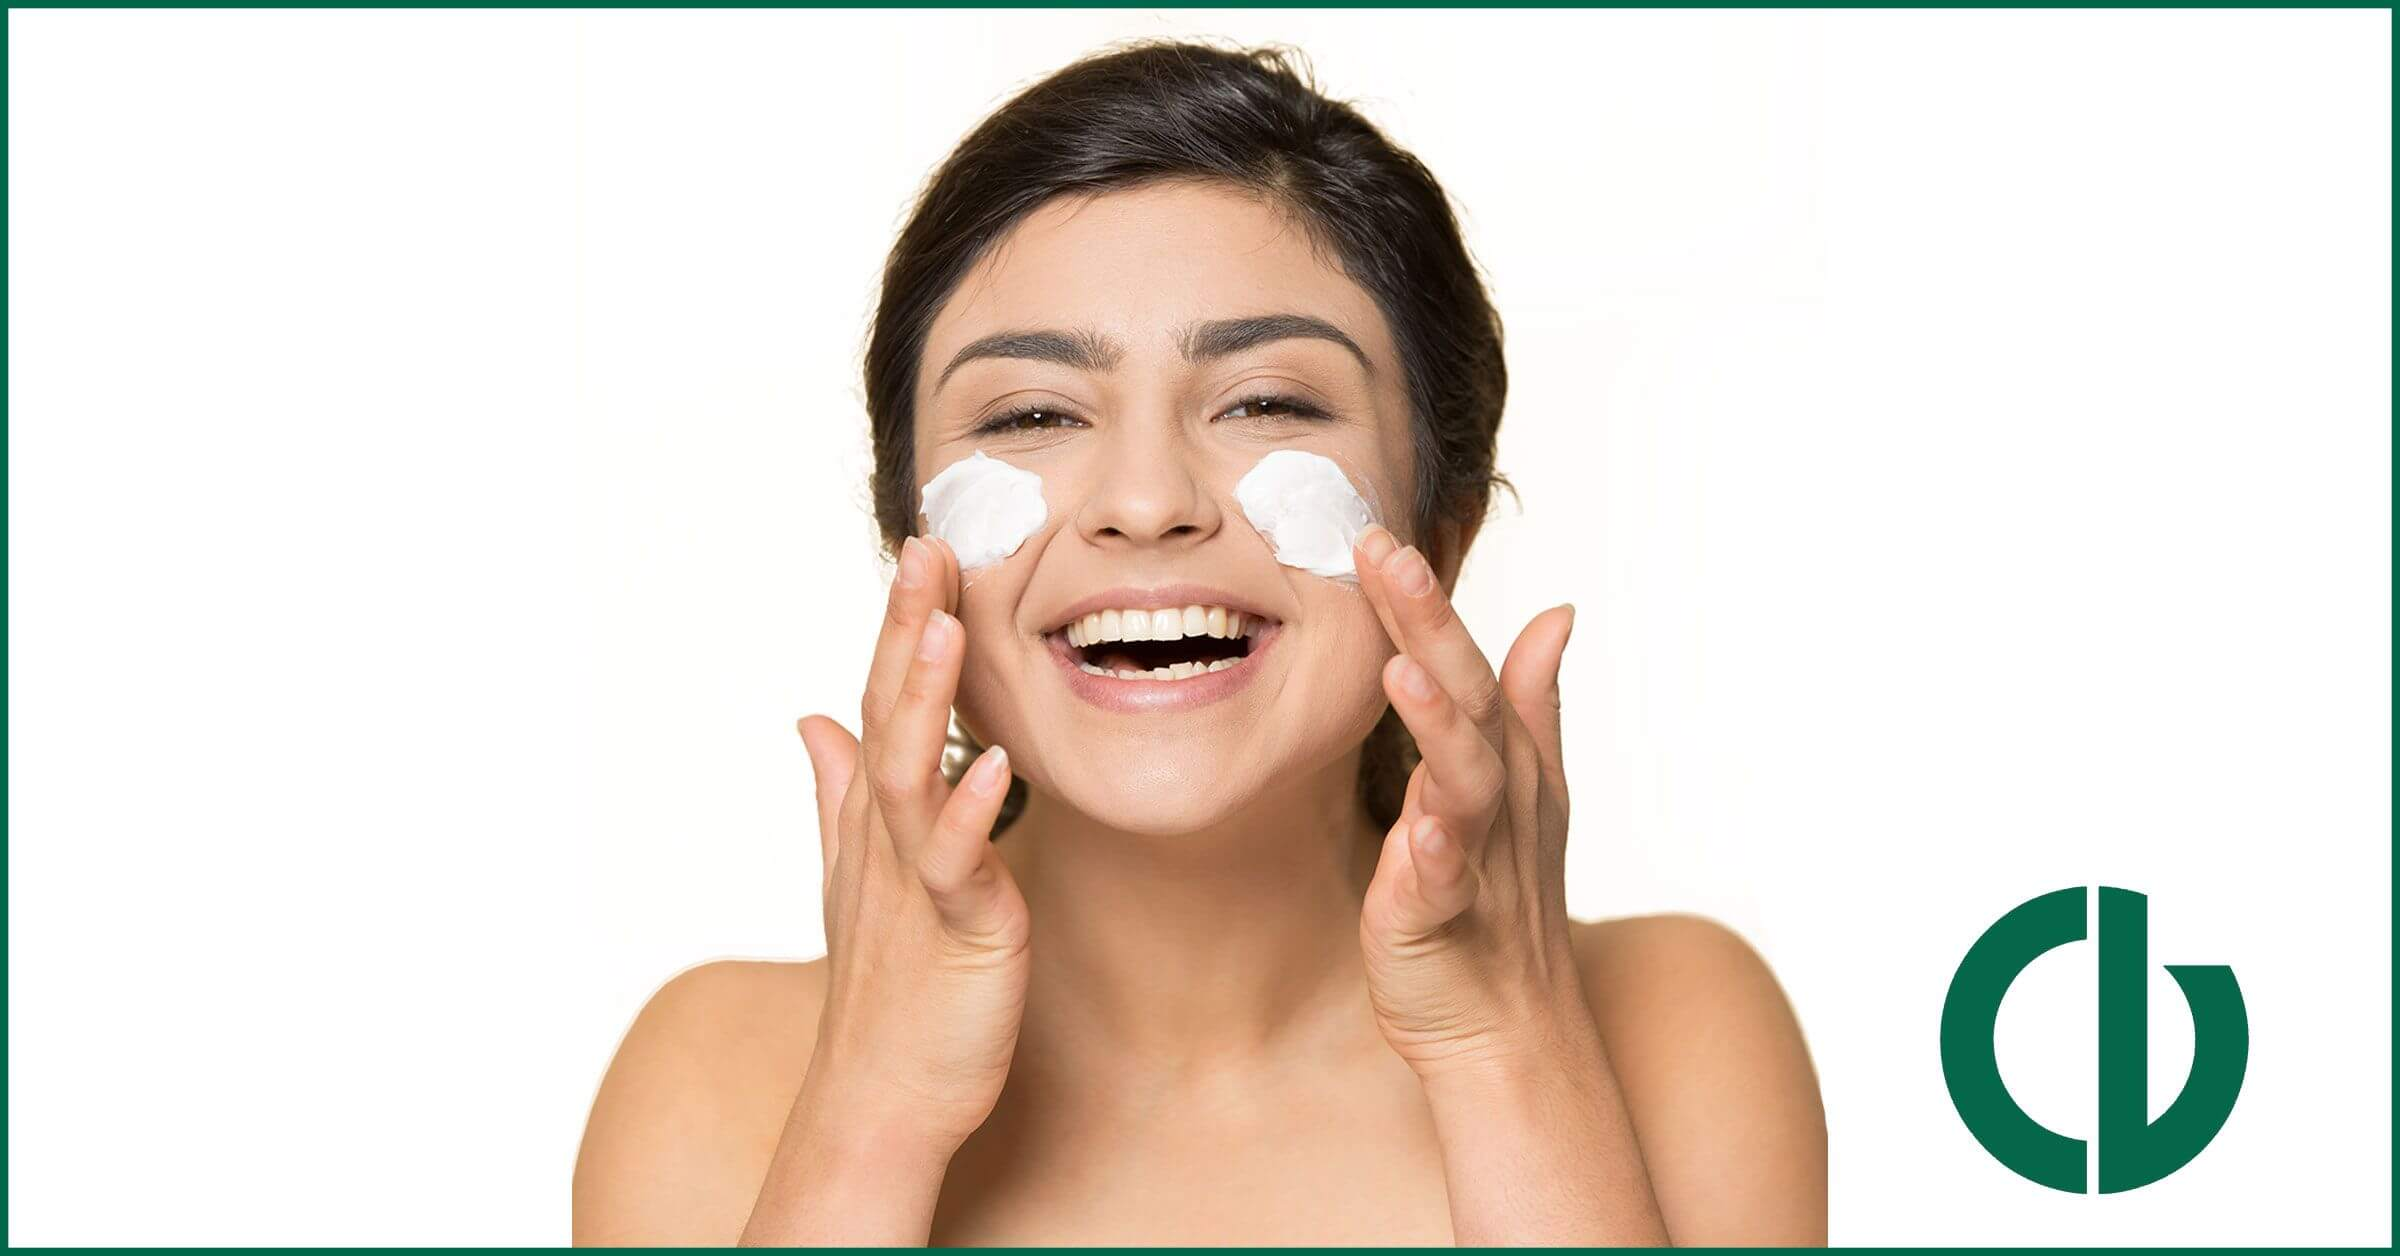 How to care for dry skin, girl happily applying face moisturizer